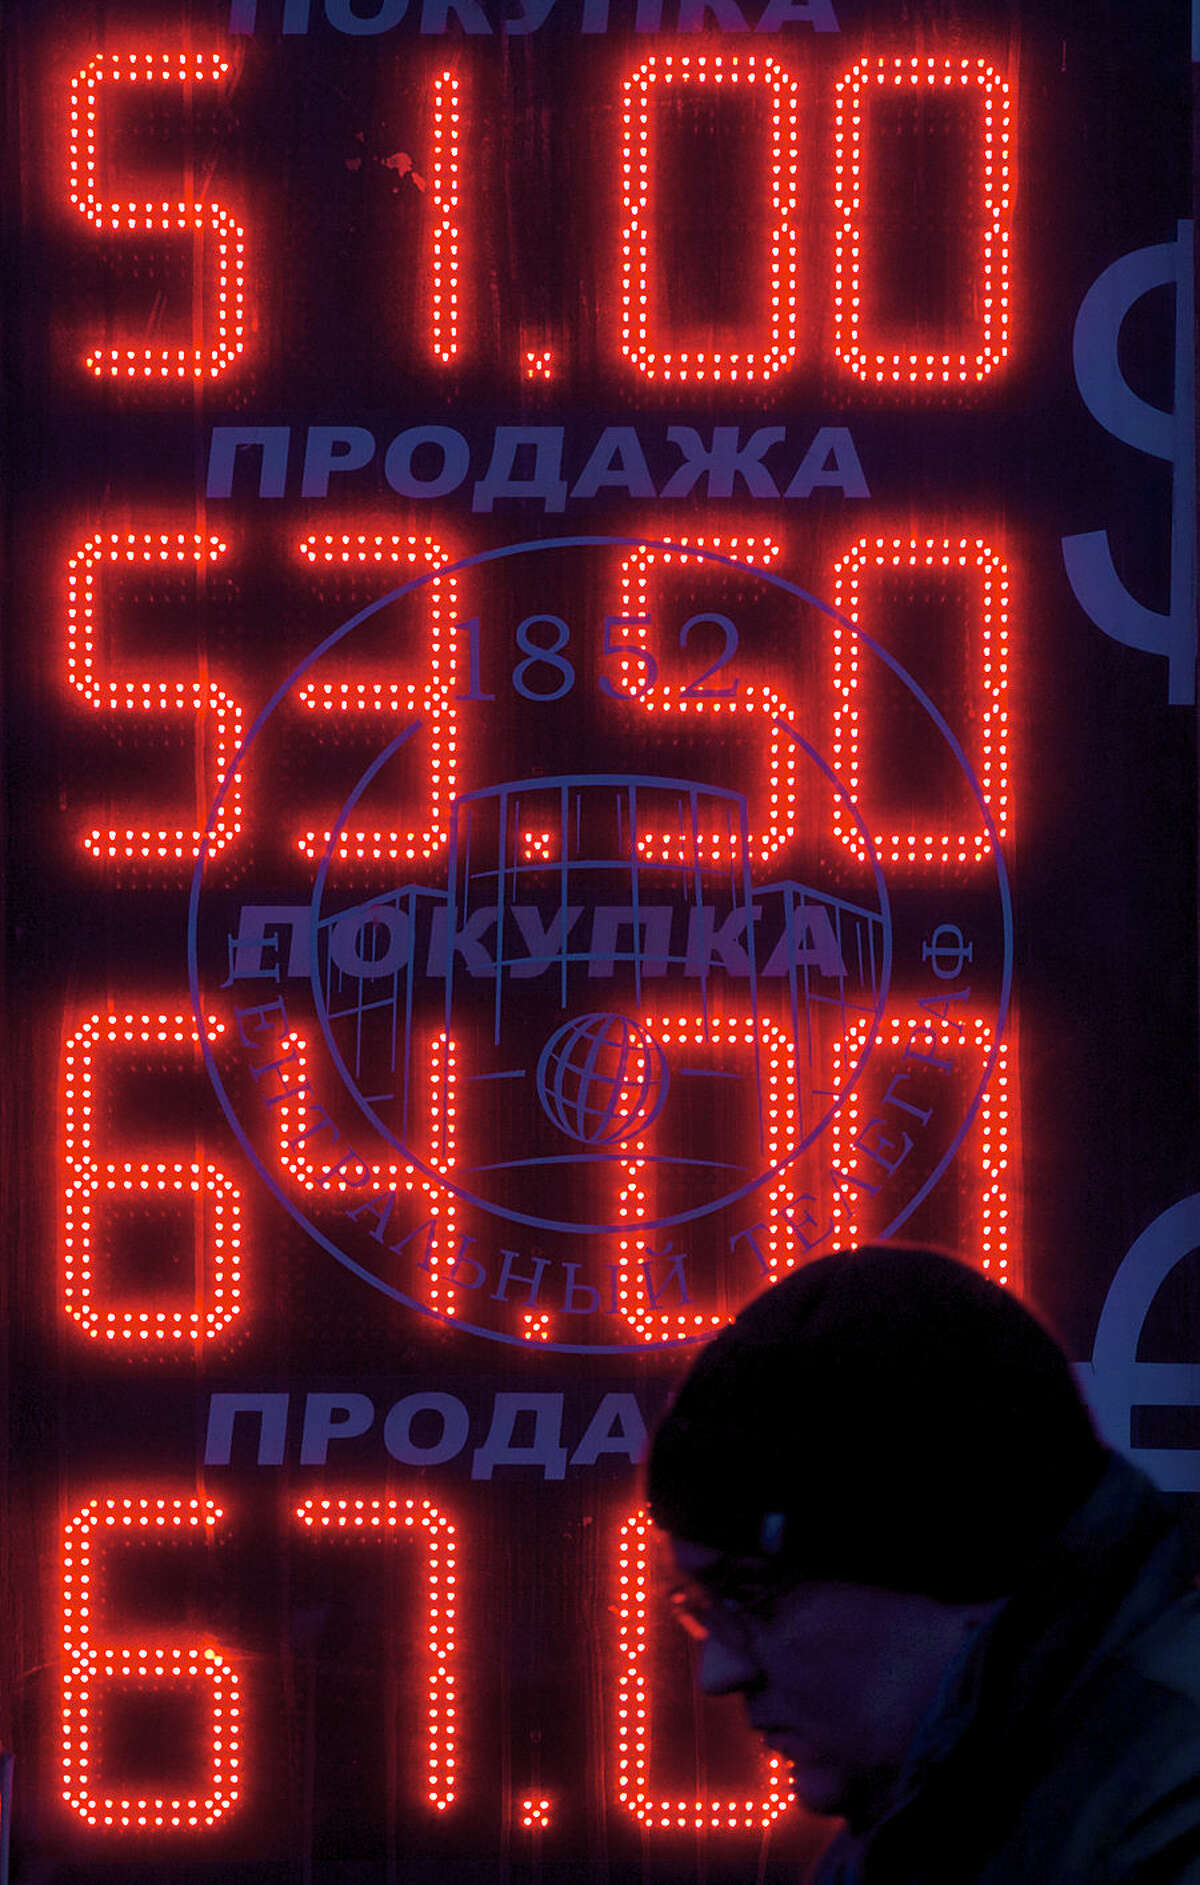 A man walks past a currency exchange booth in downtown Moscow, Russia, Tuesday, Dec. 2, 2014. The Russian government has for the first time acknowledged that the country will fall into recession next year, battered by the plunge in the price of its oil exports. The top two figures indicate the spread on the dollar-ruble rate and the bottom two figures indicate the the euro-ruble rate. (AP Photo/Ivan Sekretarev)